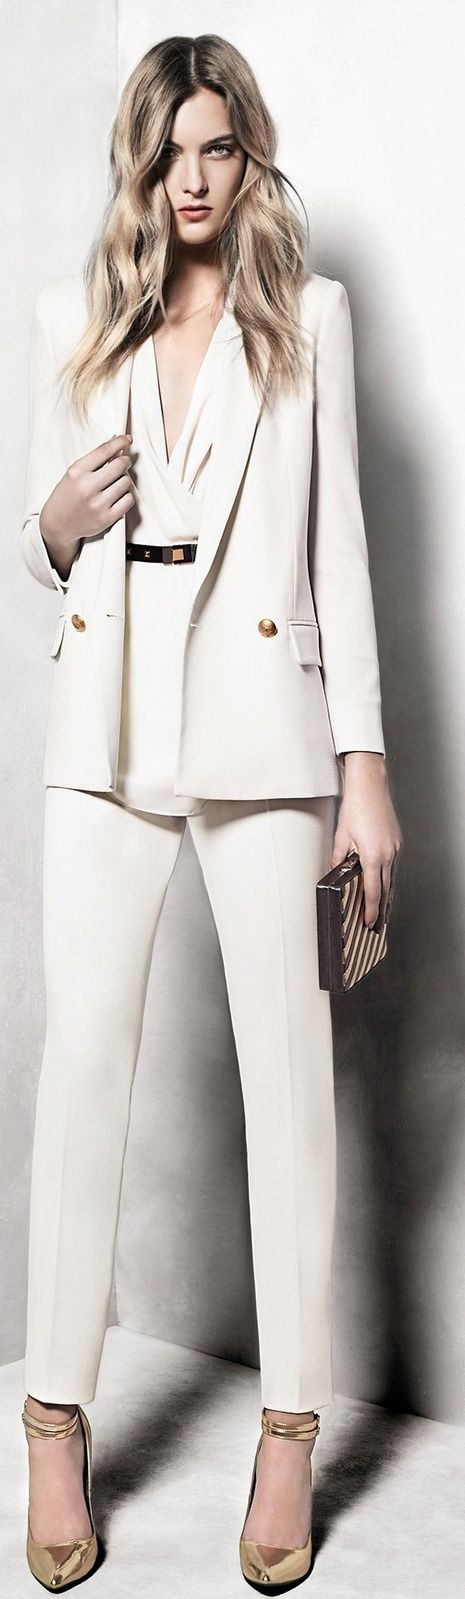 Gorgeouse White Suit Style for summer what to wear to work inspiration